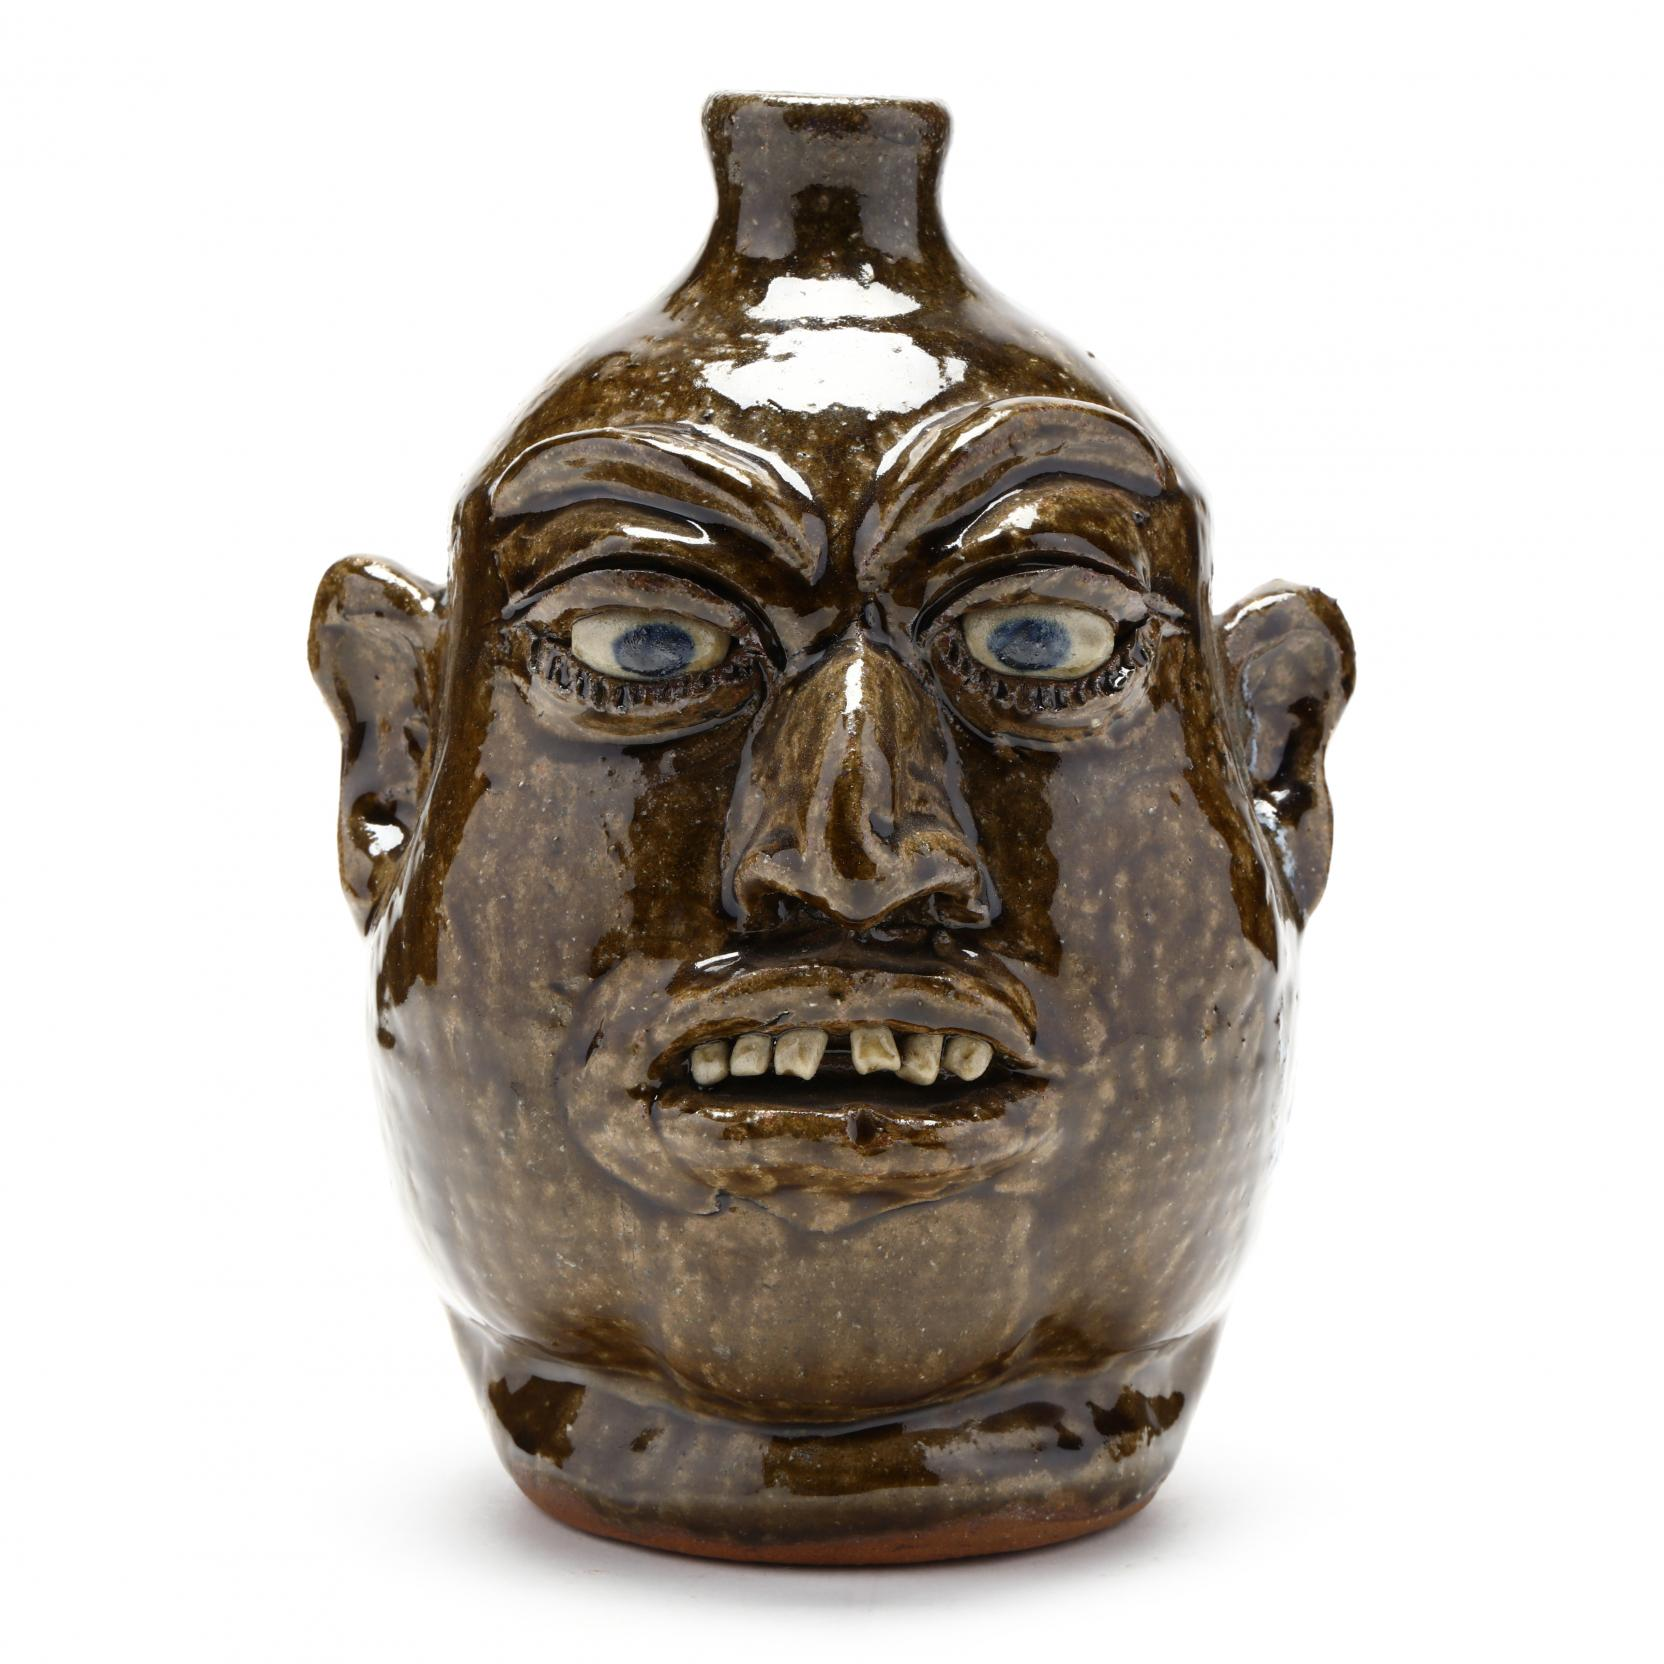 georgia-folk-pottery-face-jug-lanier-meaders-white-county-1917-1998